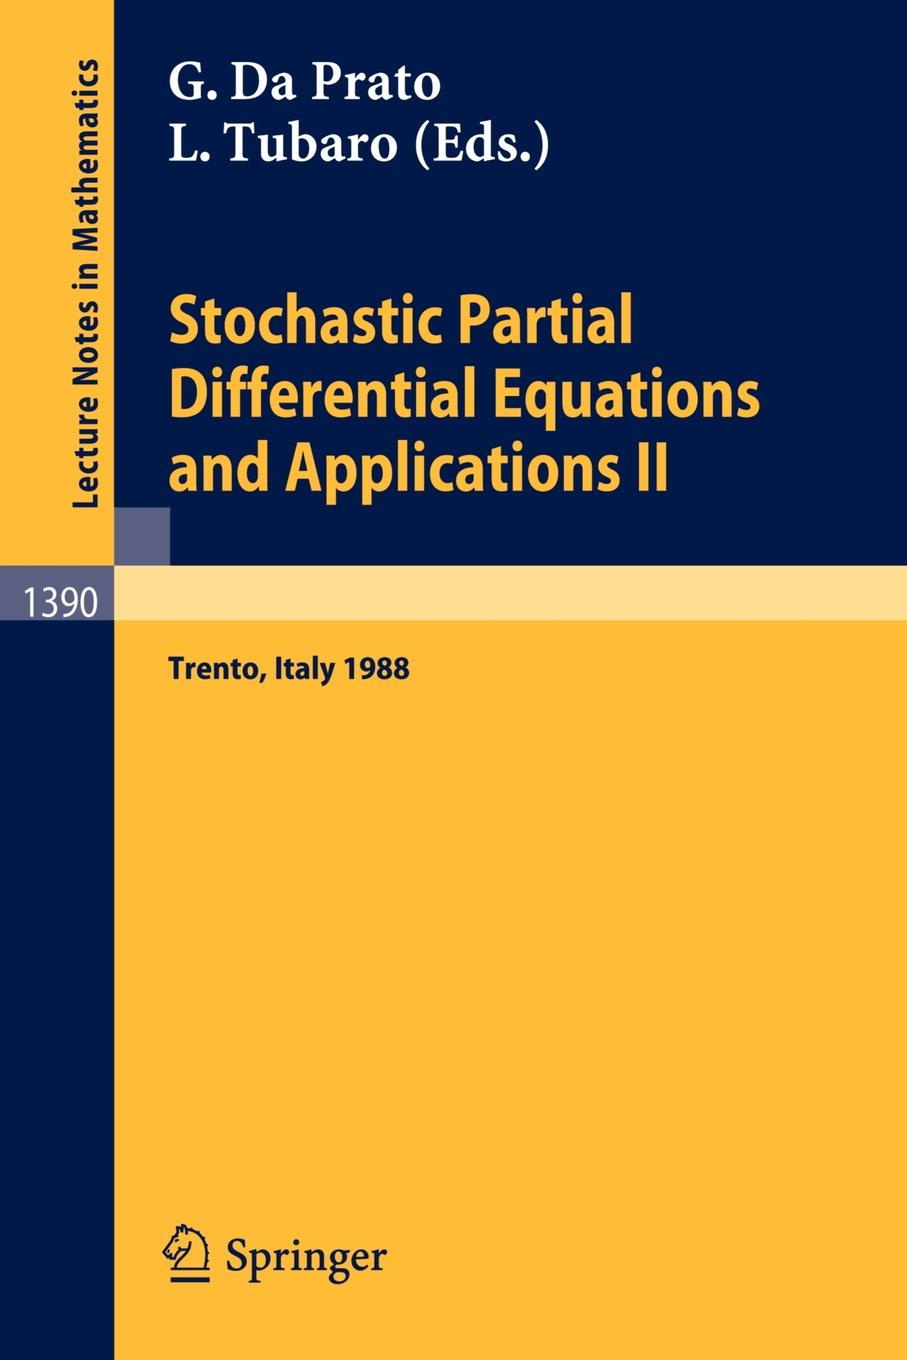 Stochastic Partial Differential Equations and Applications II. Proceedings of a Conference held in Trento, Italy, February 1-6, 1988